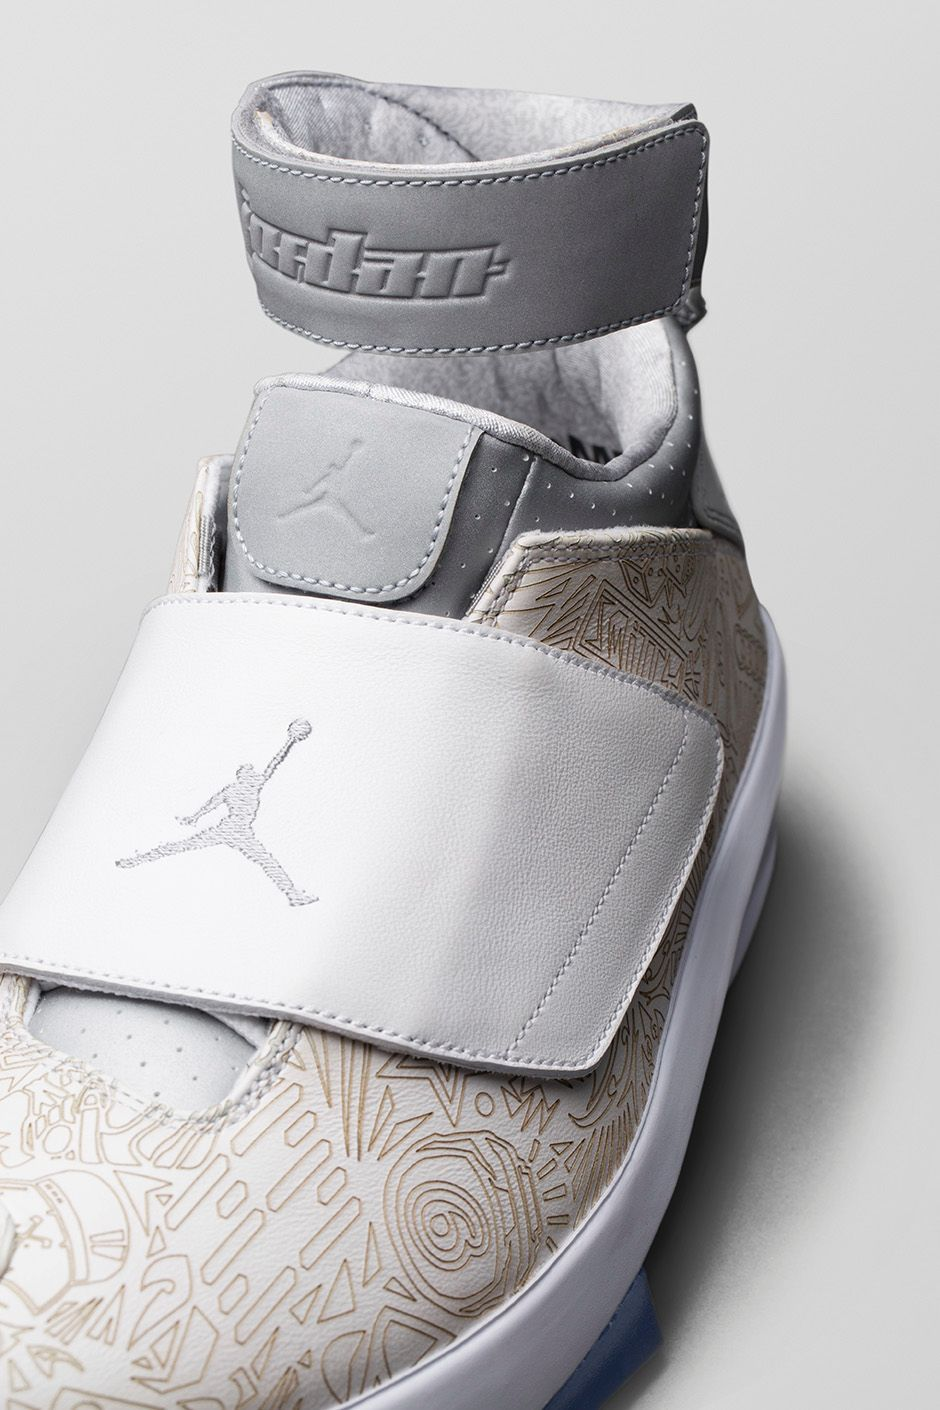 a3709748225 The highly anticipated Nike Air Jordan 20 Laser White is all set to hit the  stores